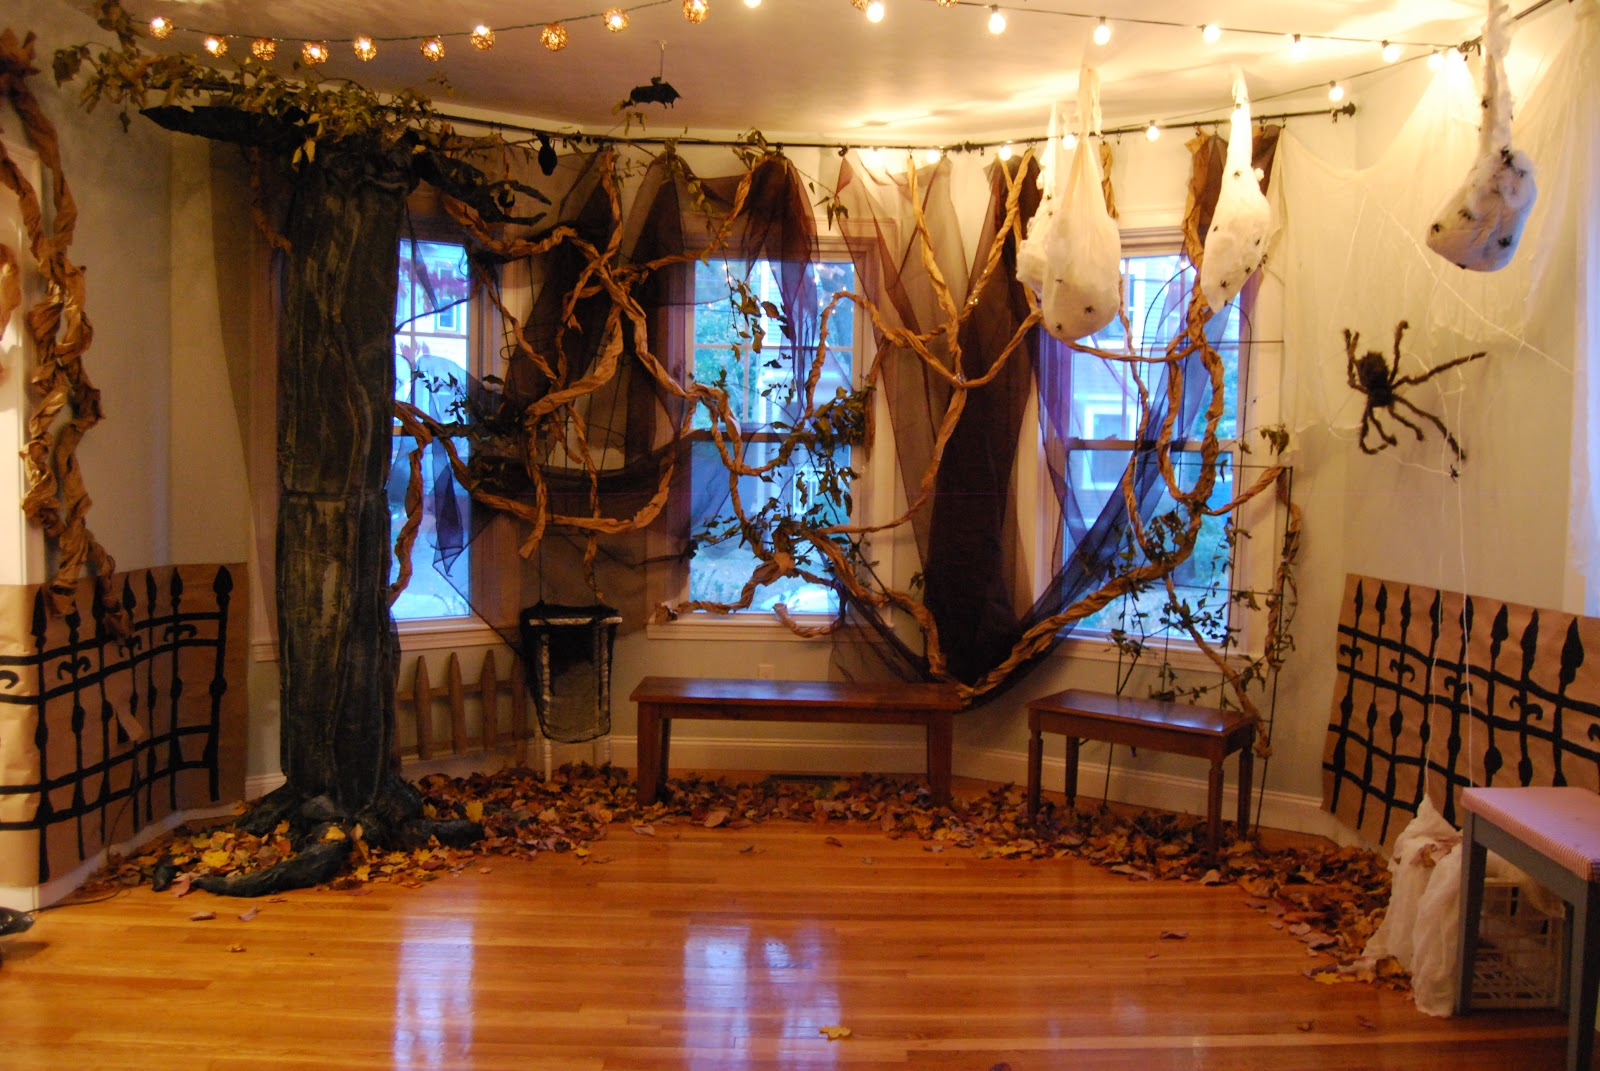 The Salad Days 5th Annual Donigard Halloween Party The Decorations Part 1